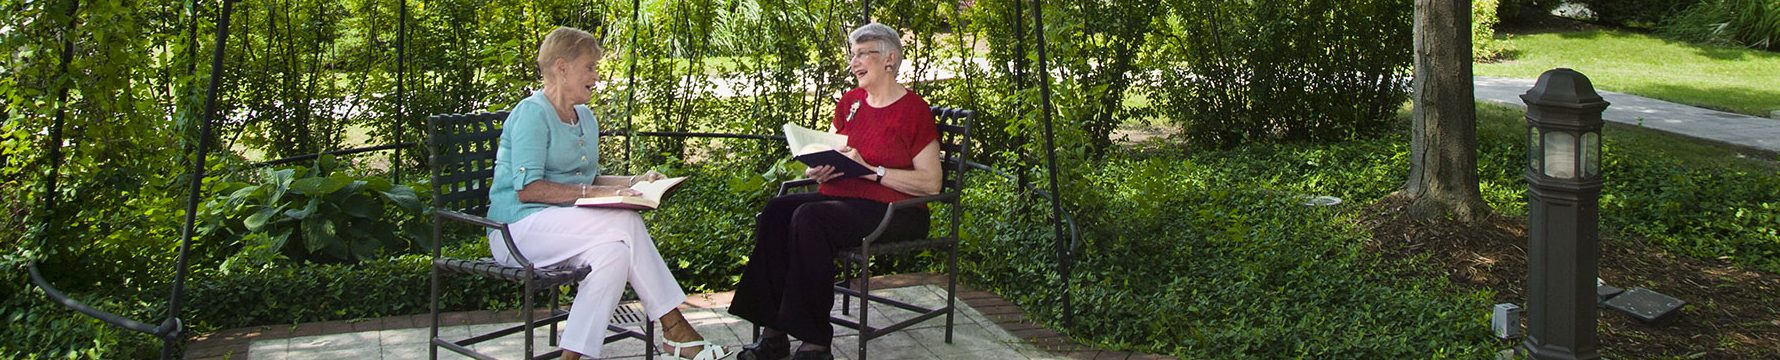 Two senior women sitting in the garden of their senior living community and reading books